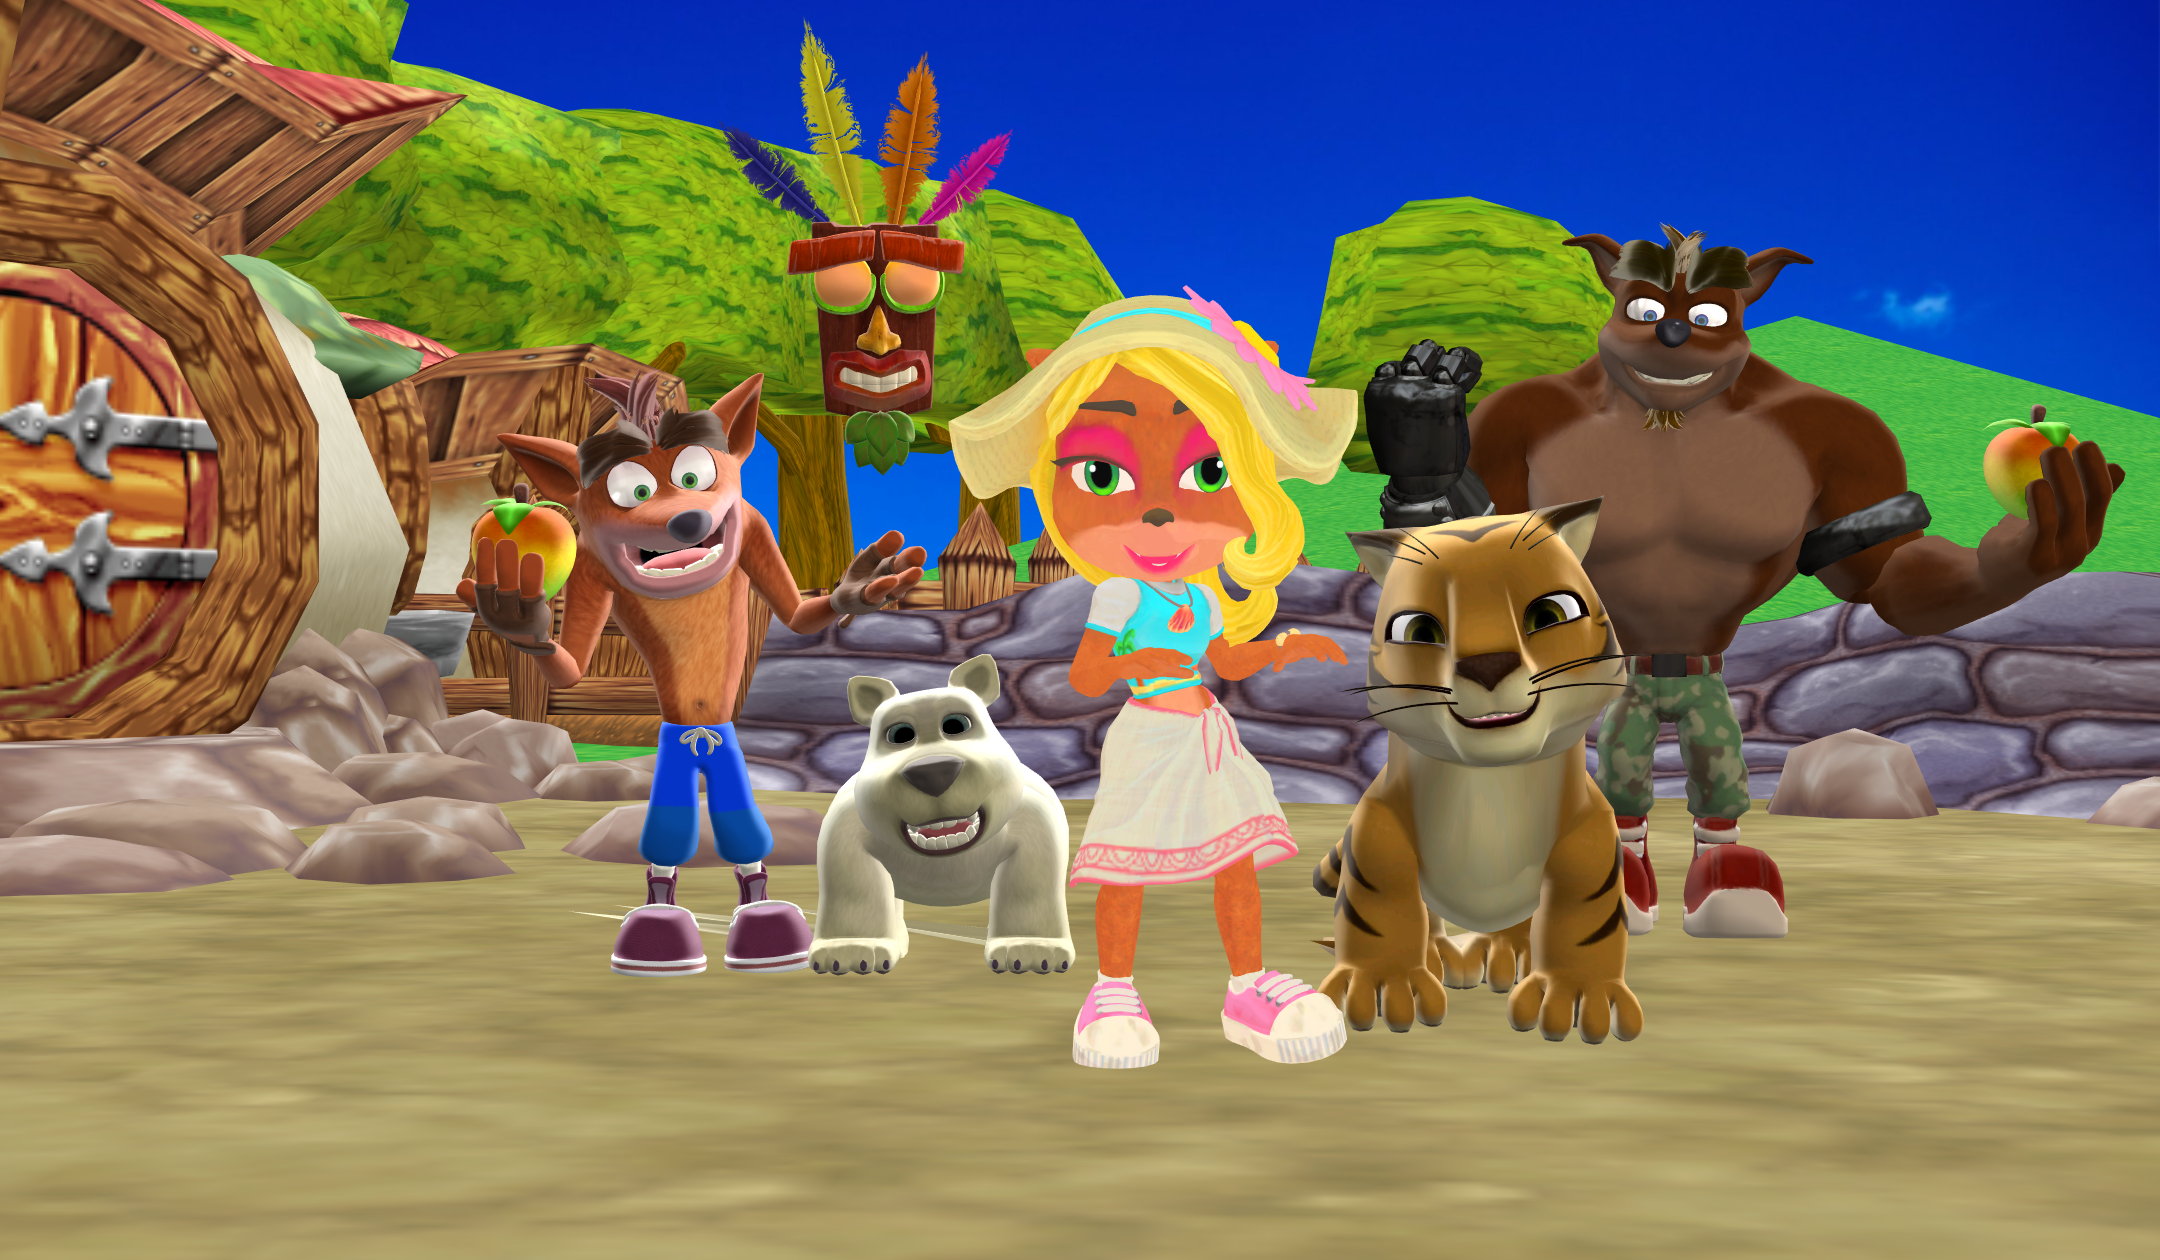 Dancing Bandicoot in with Beach Coco